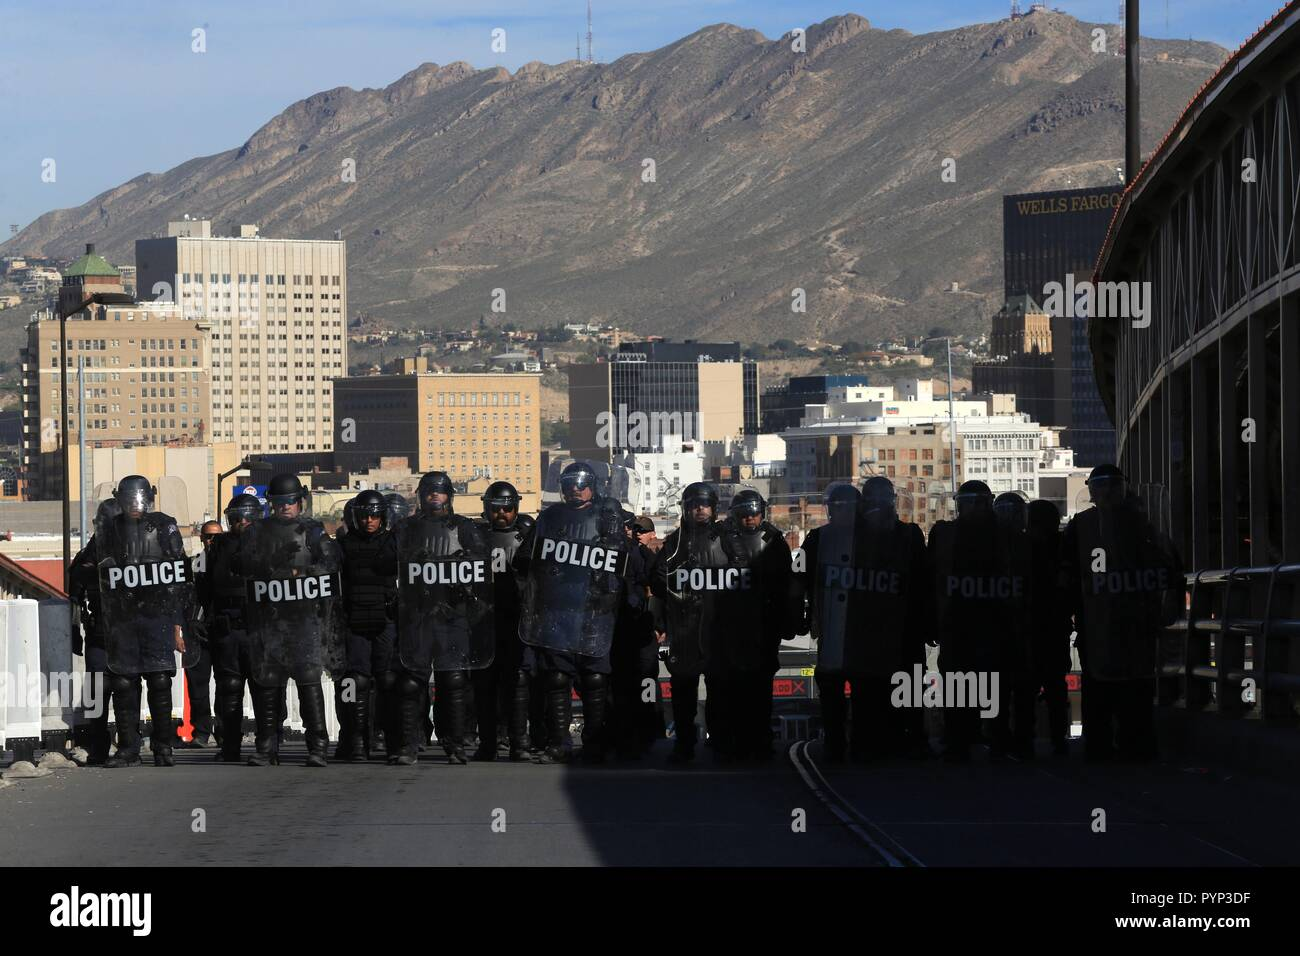 El Paso, Texas, USA  29th Oct, 2018  Customs and Border